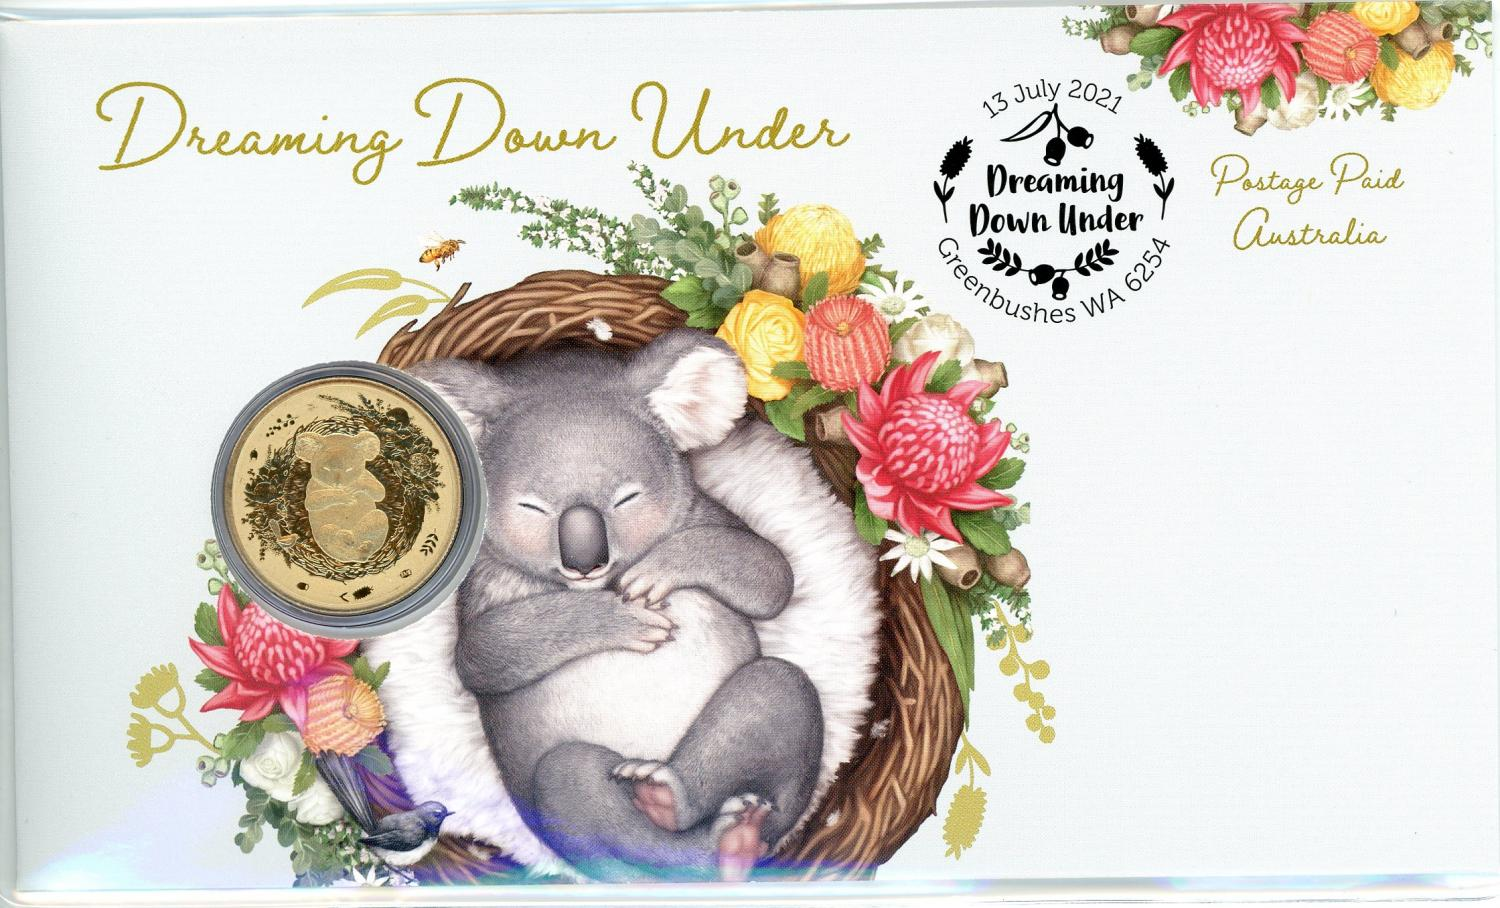 Thumbnail for 2021 Issue 29 - Dreaming Down Under  - Koala PNC with Perth Mint $1